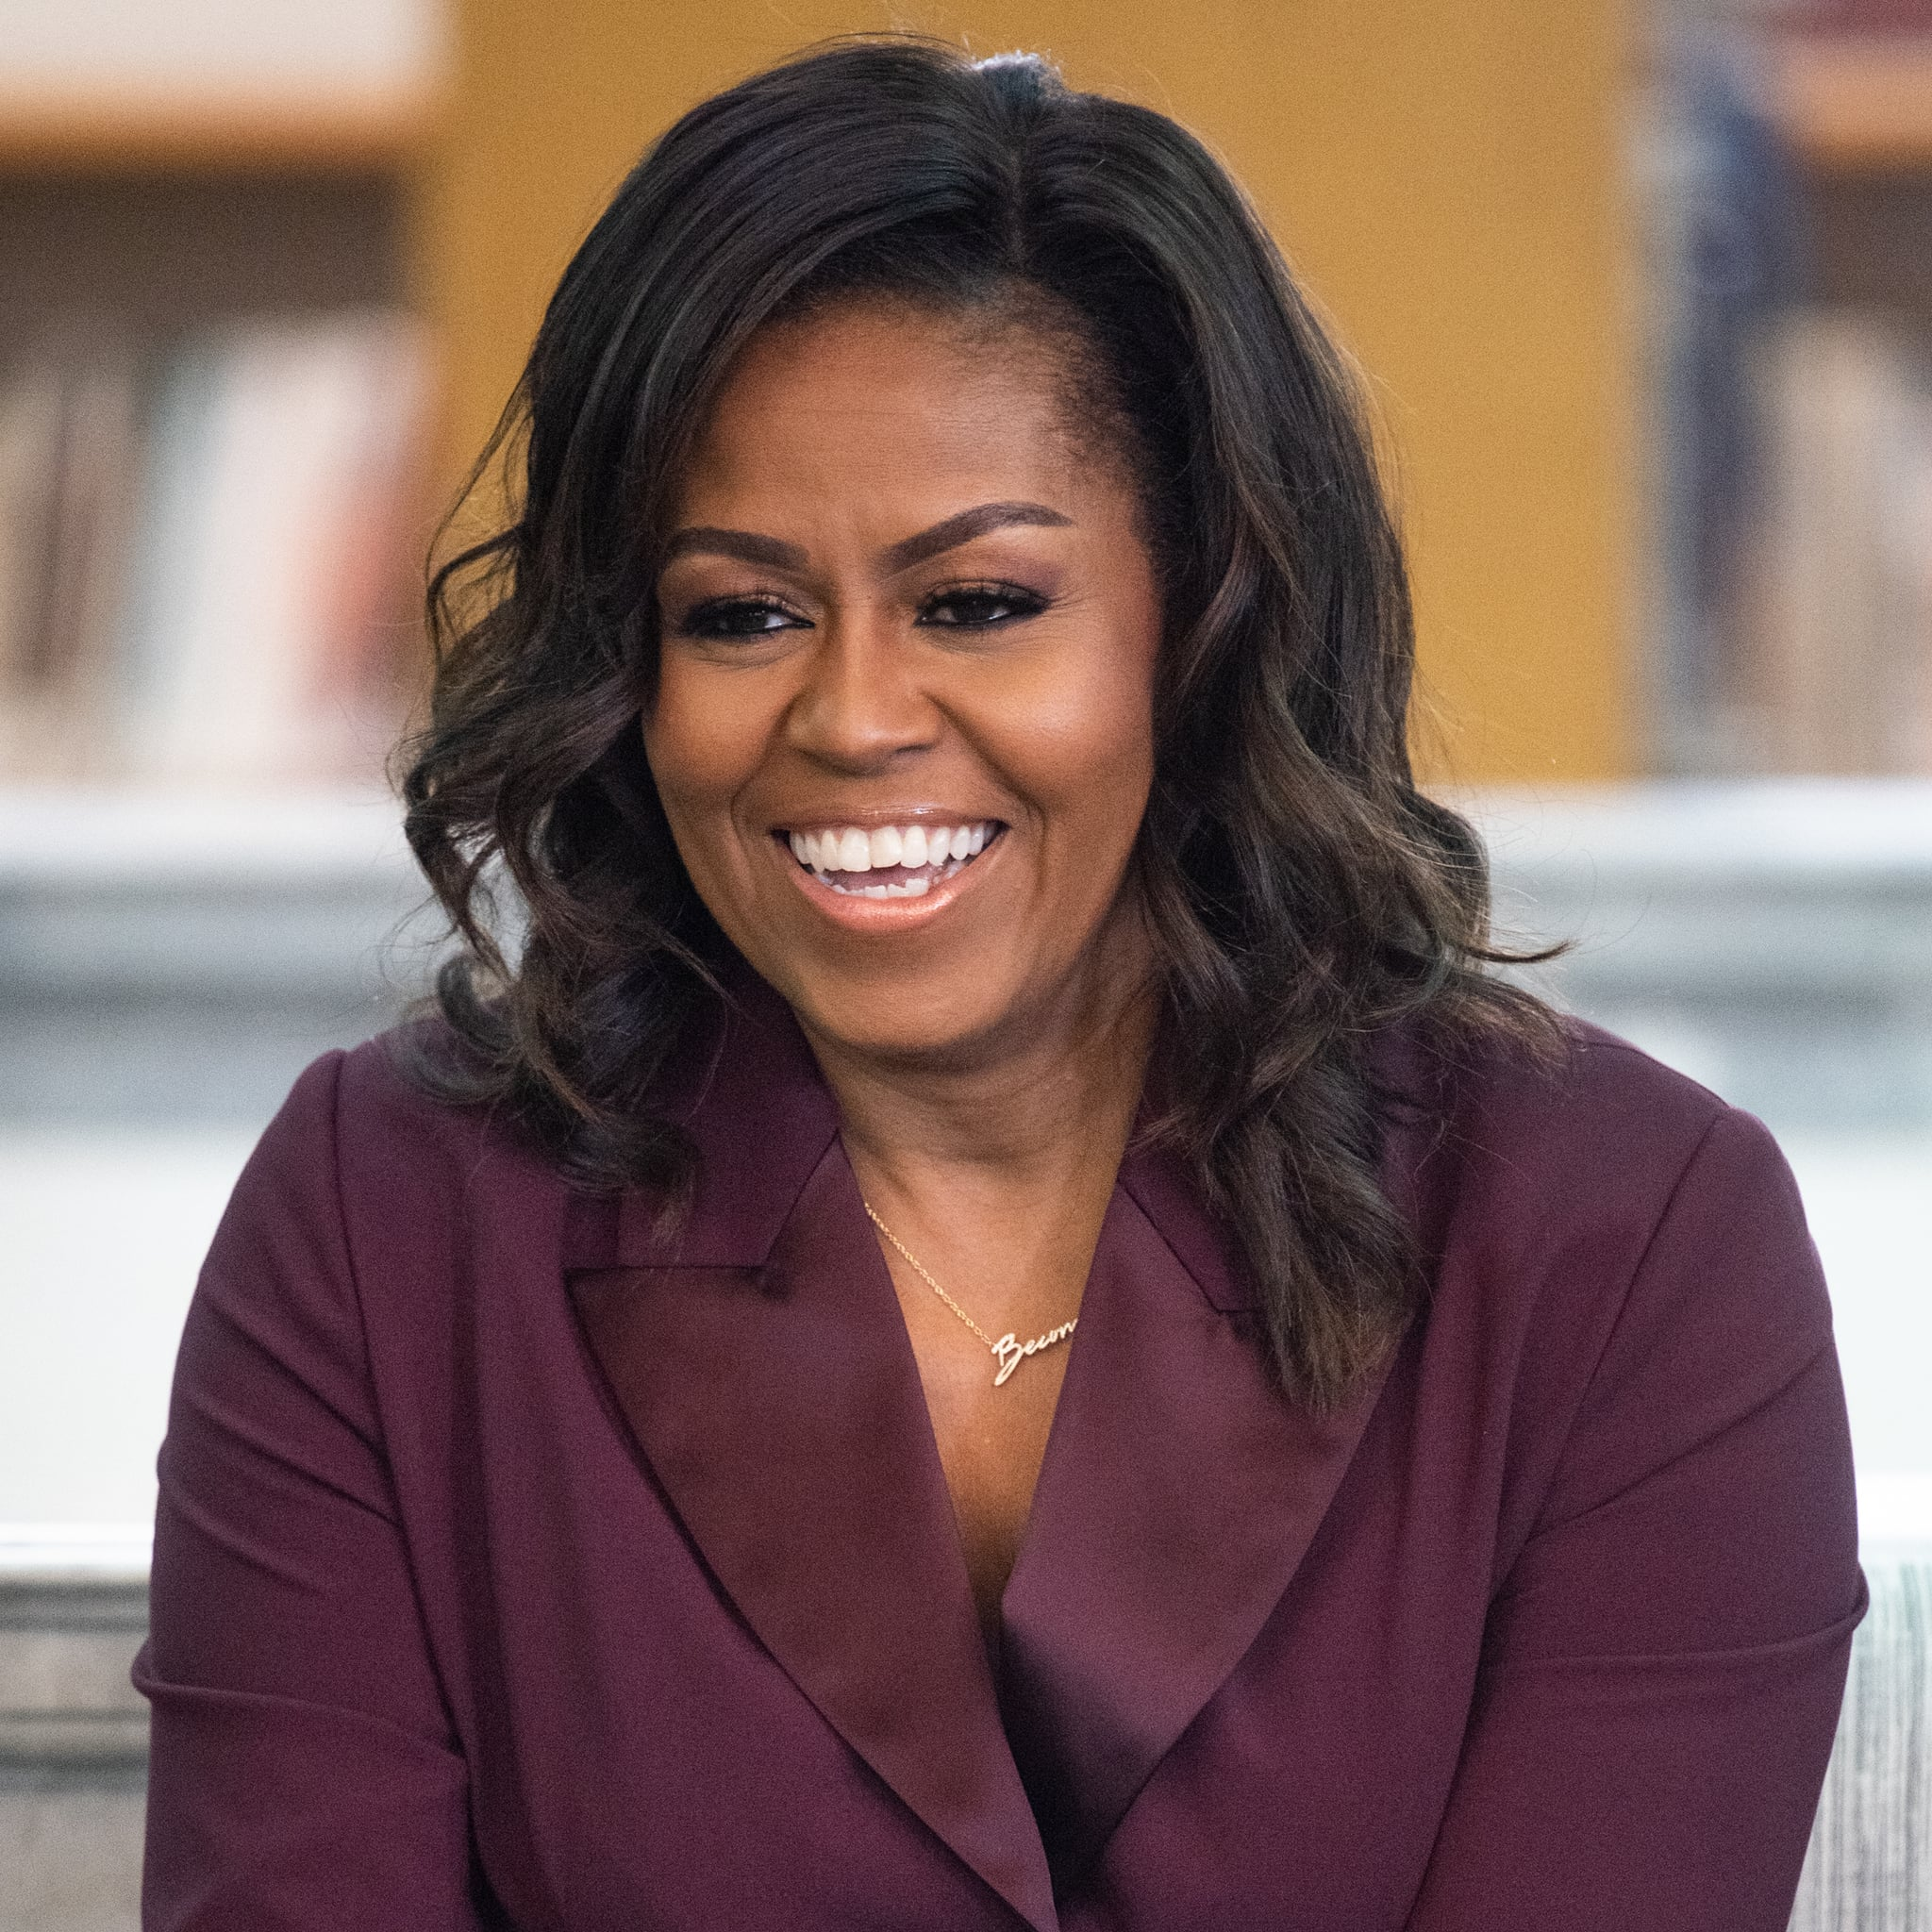 Michelle Obama Shows Off Her Natural Beauty In THIS Birthday Selfie!